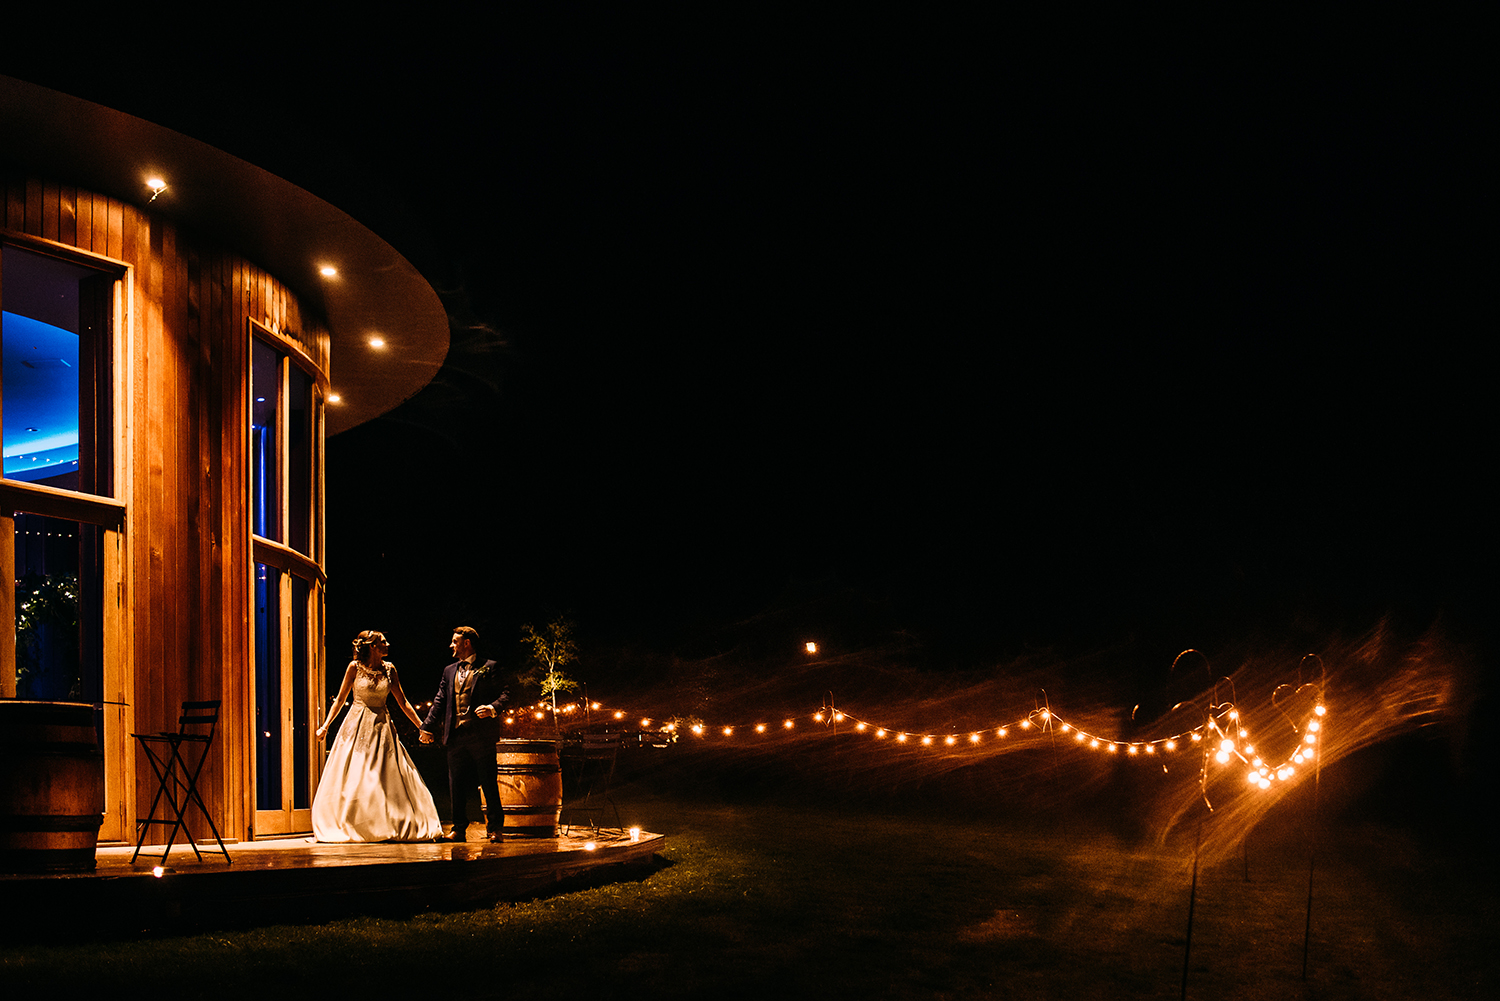 Bride and groom outside the Out barn wedding venue at night